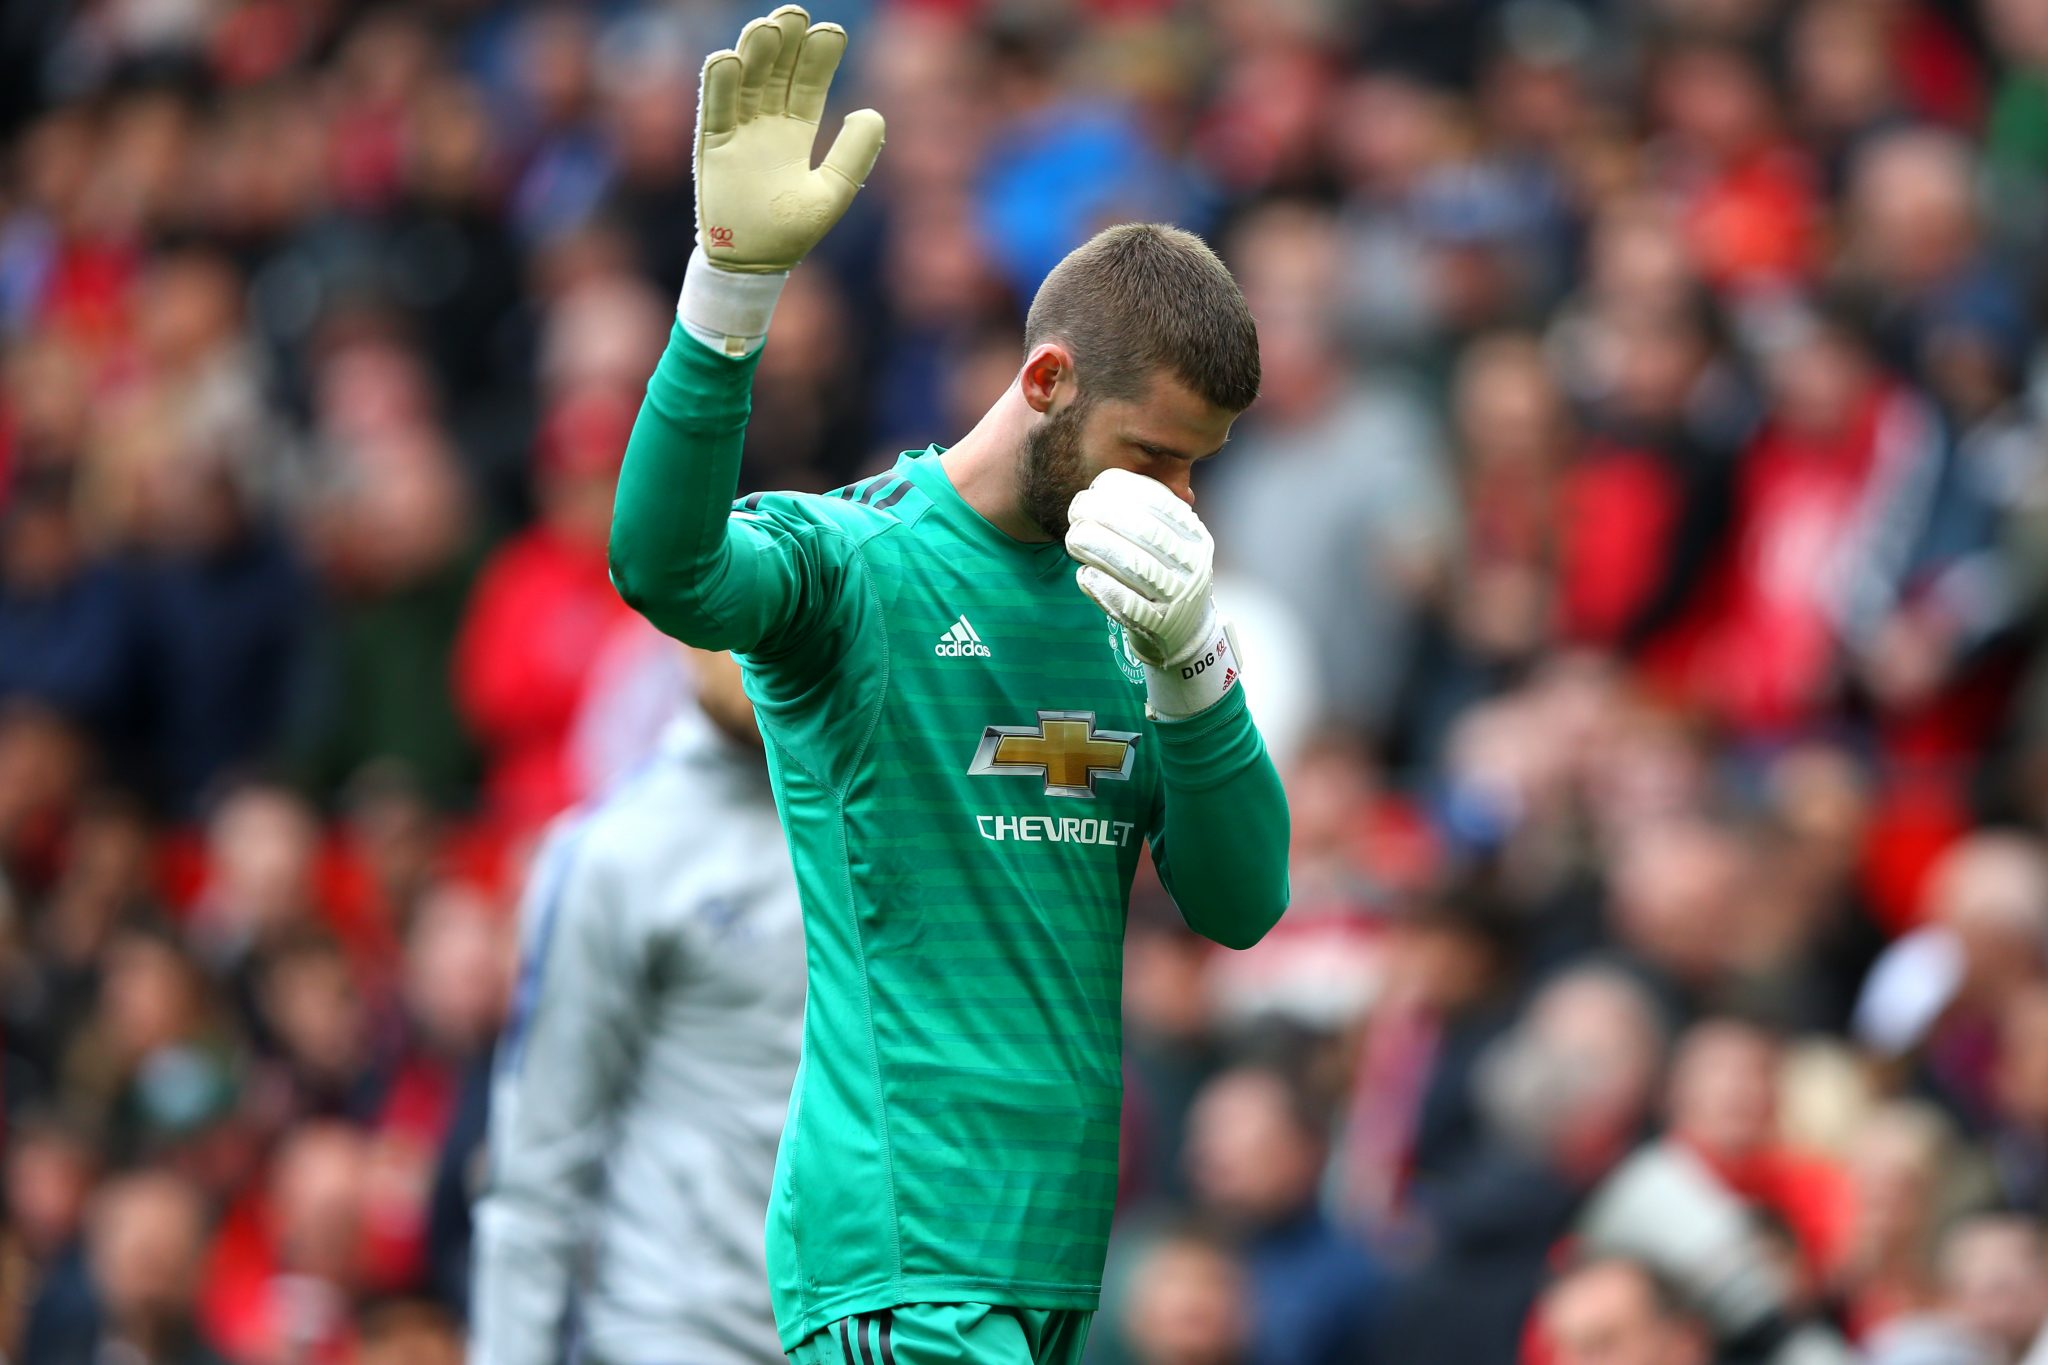 David De Gea of Manchester United looks on as he is beaten by Marcos Alonso of Chelsea as he scores his team's first goal during the Premier League match between Manchester United and Chelsea FC at Old Trafford on April 28, 2019 in Manchester, United Kingdom. (Photo by Shaun Botterill/Getty Images)